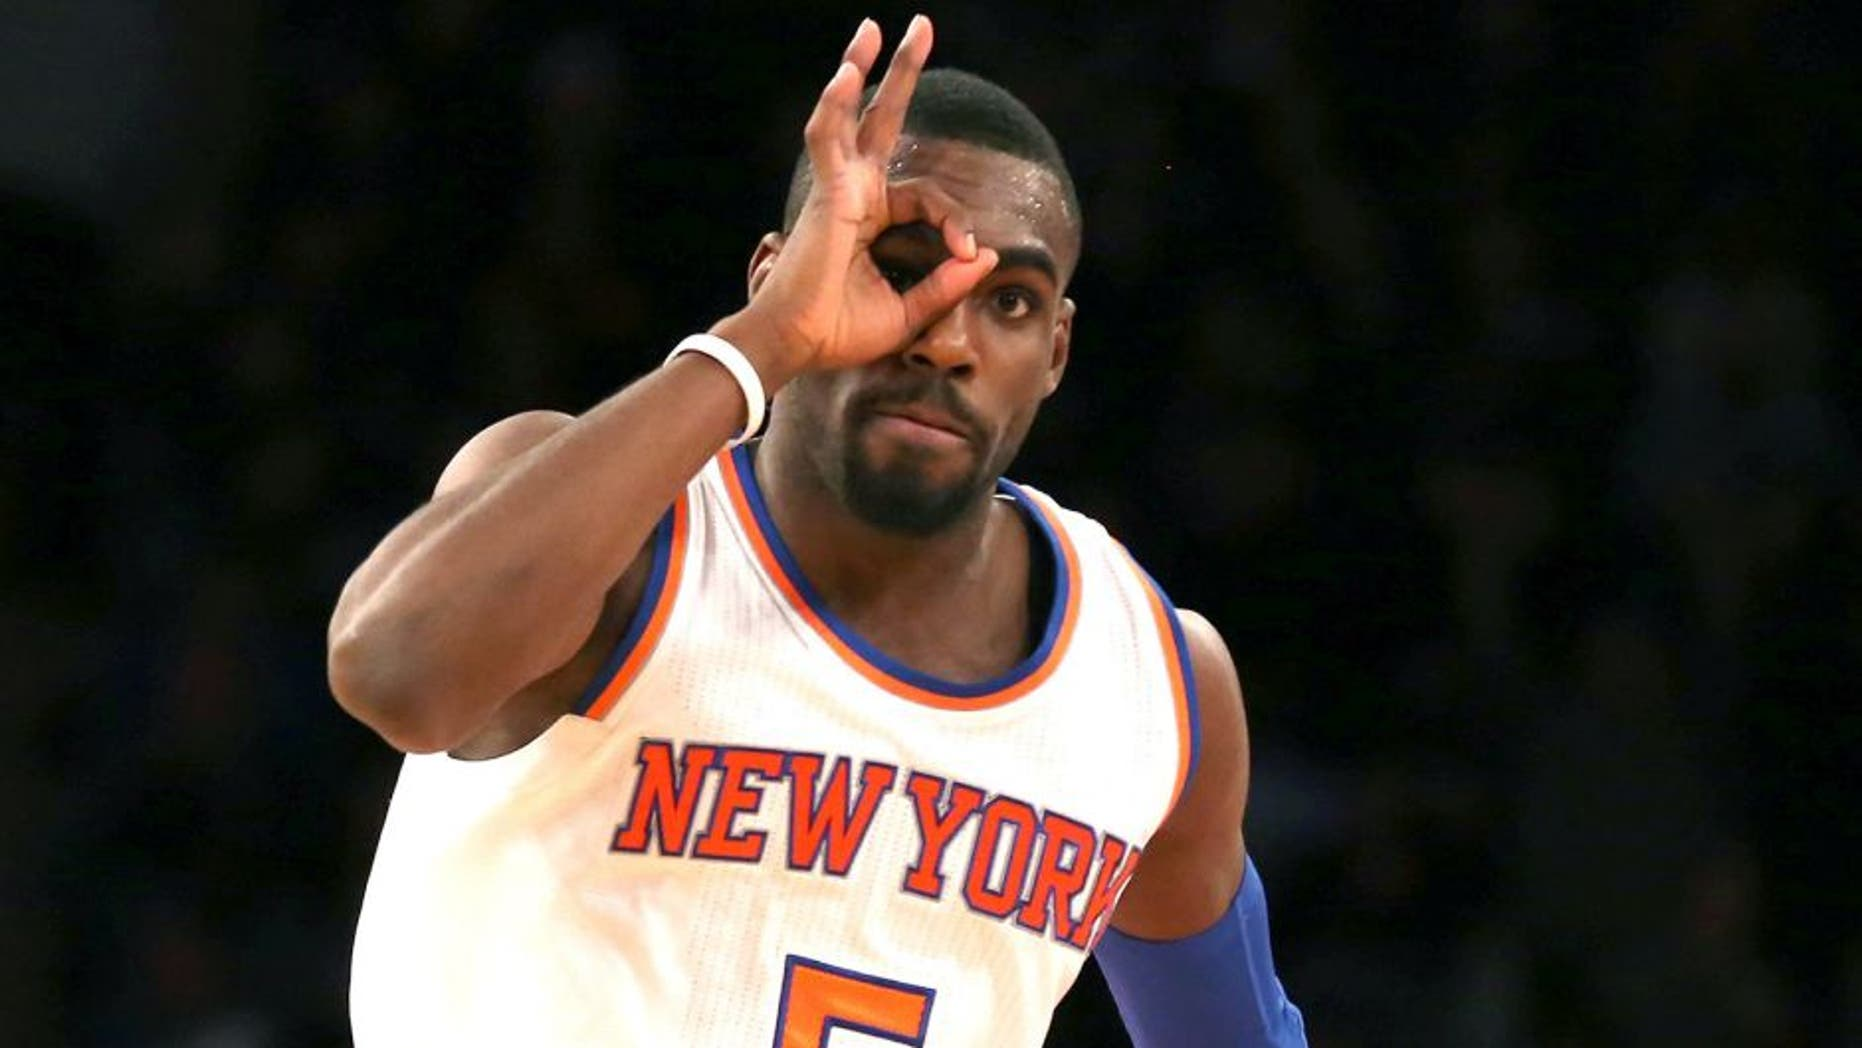 Jan 19, 2015; New York, NY, USA; New York Knicks guard Tim Hardaway Jr. (5) reacts after making a three-point shot against the New Orleans Pelicans during the fourth quarter at Madison Square Garden. The Knicks defeated the Pelicans 99-92. Mandatory Credit: Adam Hunger-USA TODAY Sports